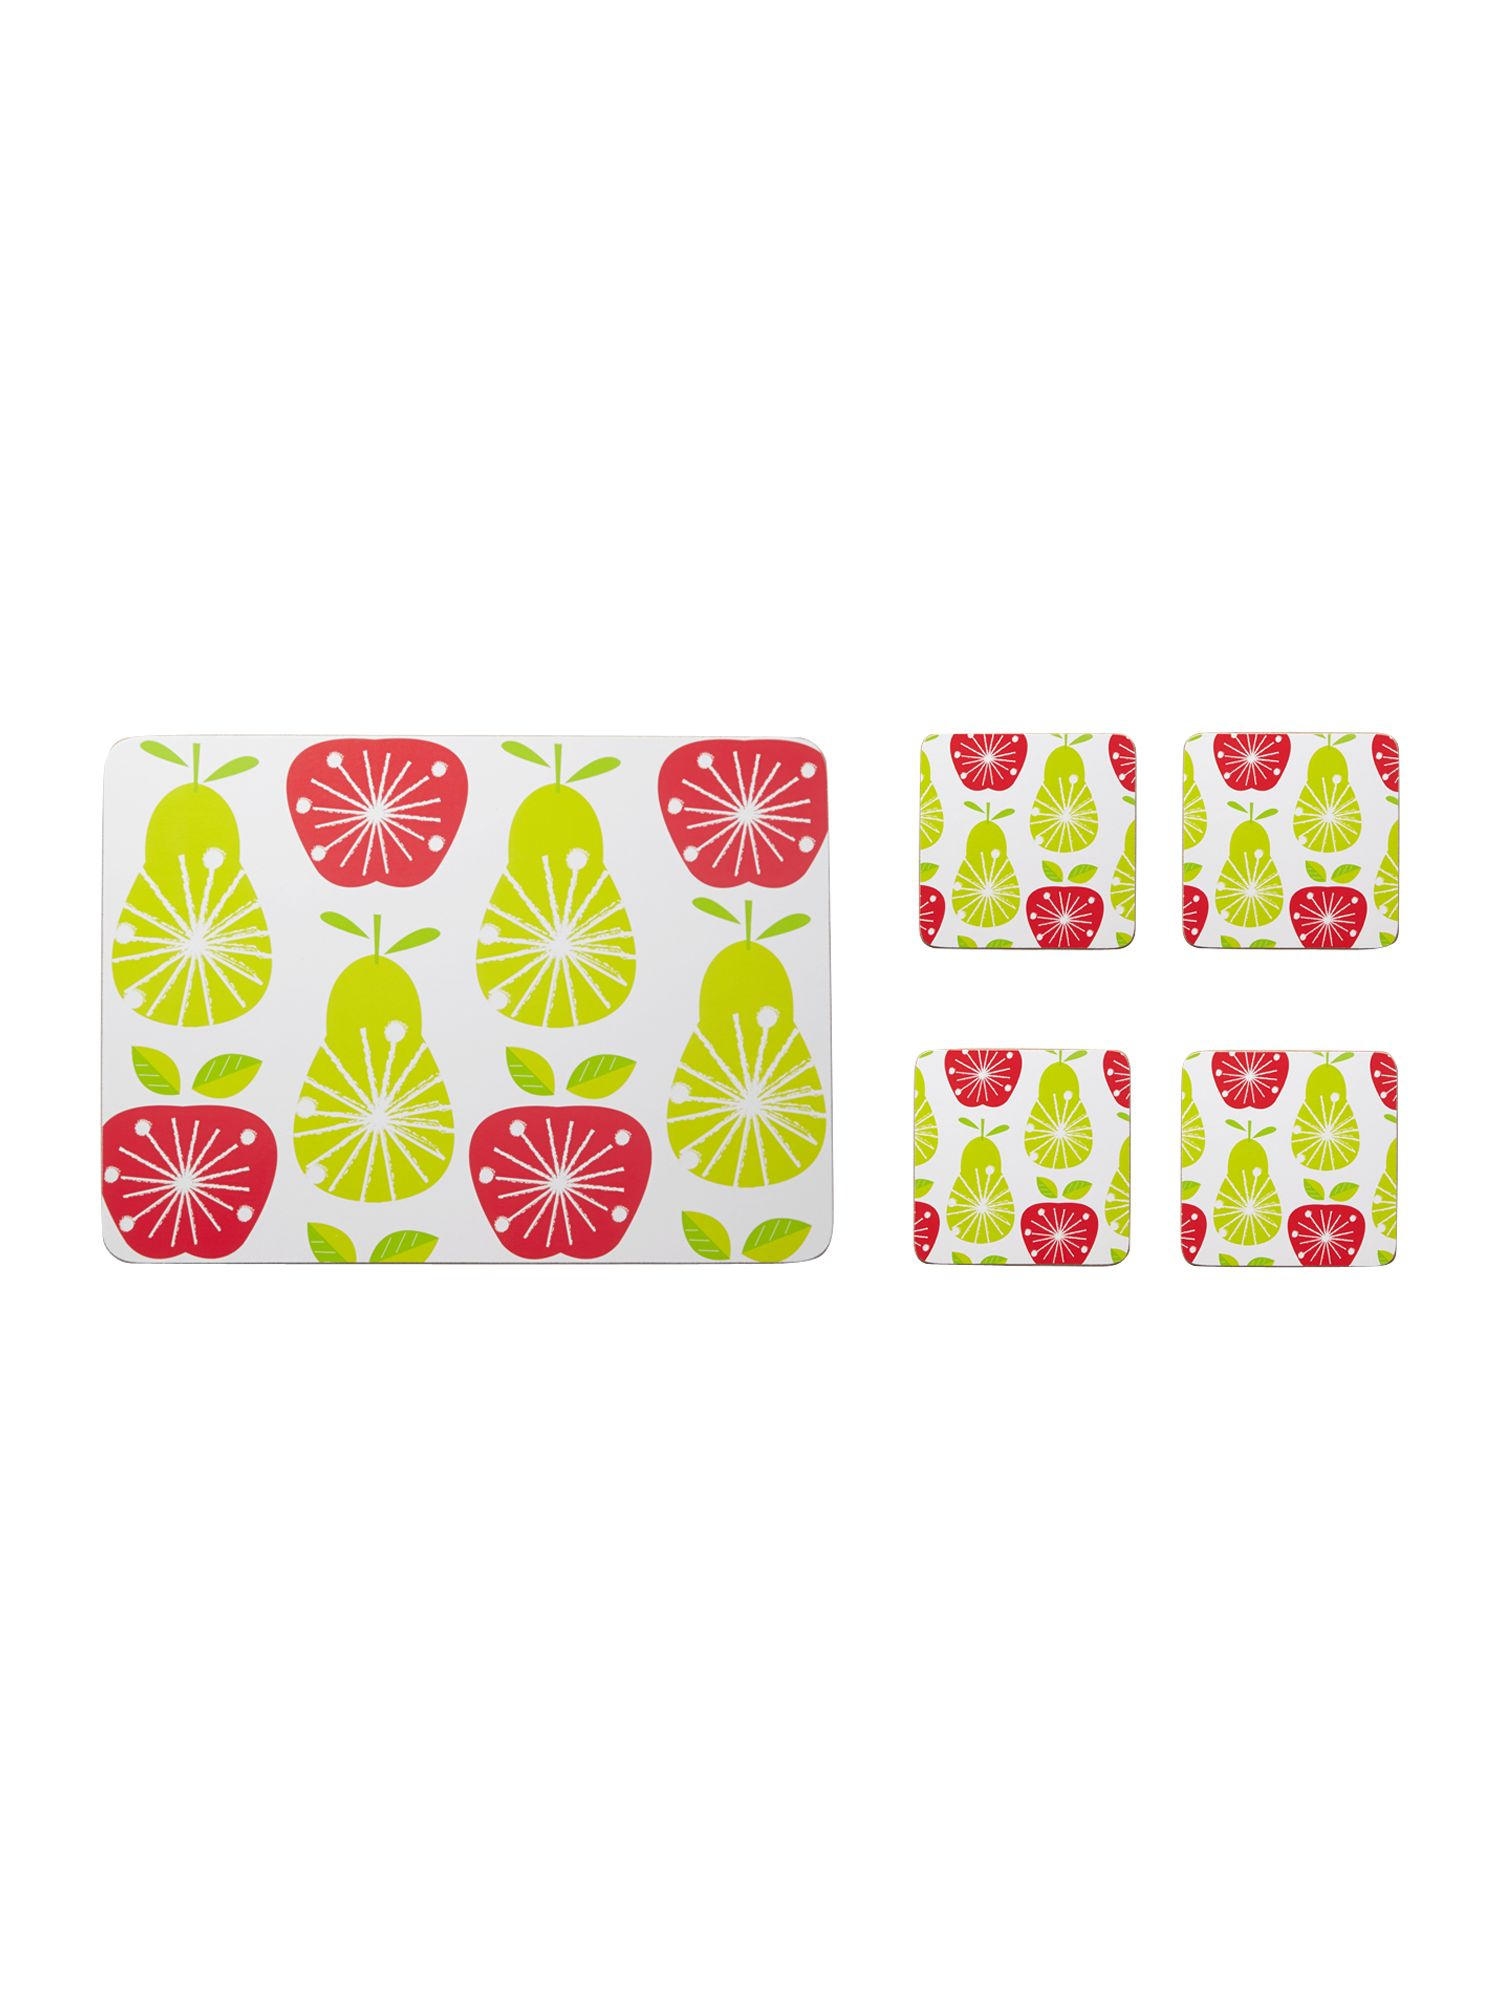 Fruit Salad placemat set of 4